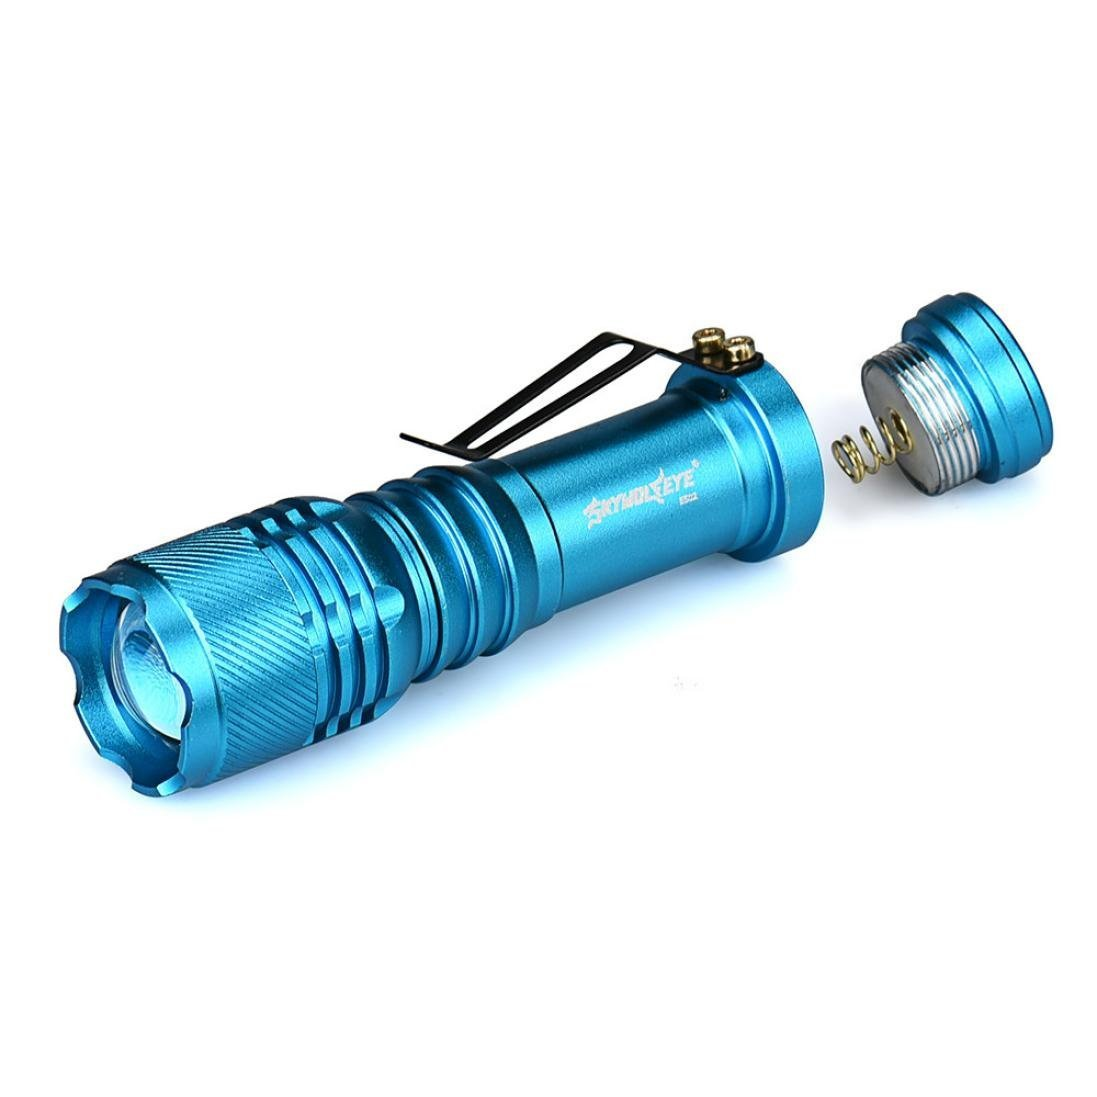 Tonsee 6000LM CREE Q5 AA/14500 3 Modes ZOOMABLE LED Flashlight Torch Super Bright Tonsee-4564564